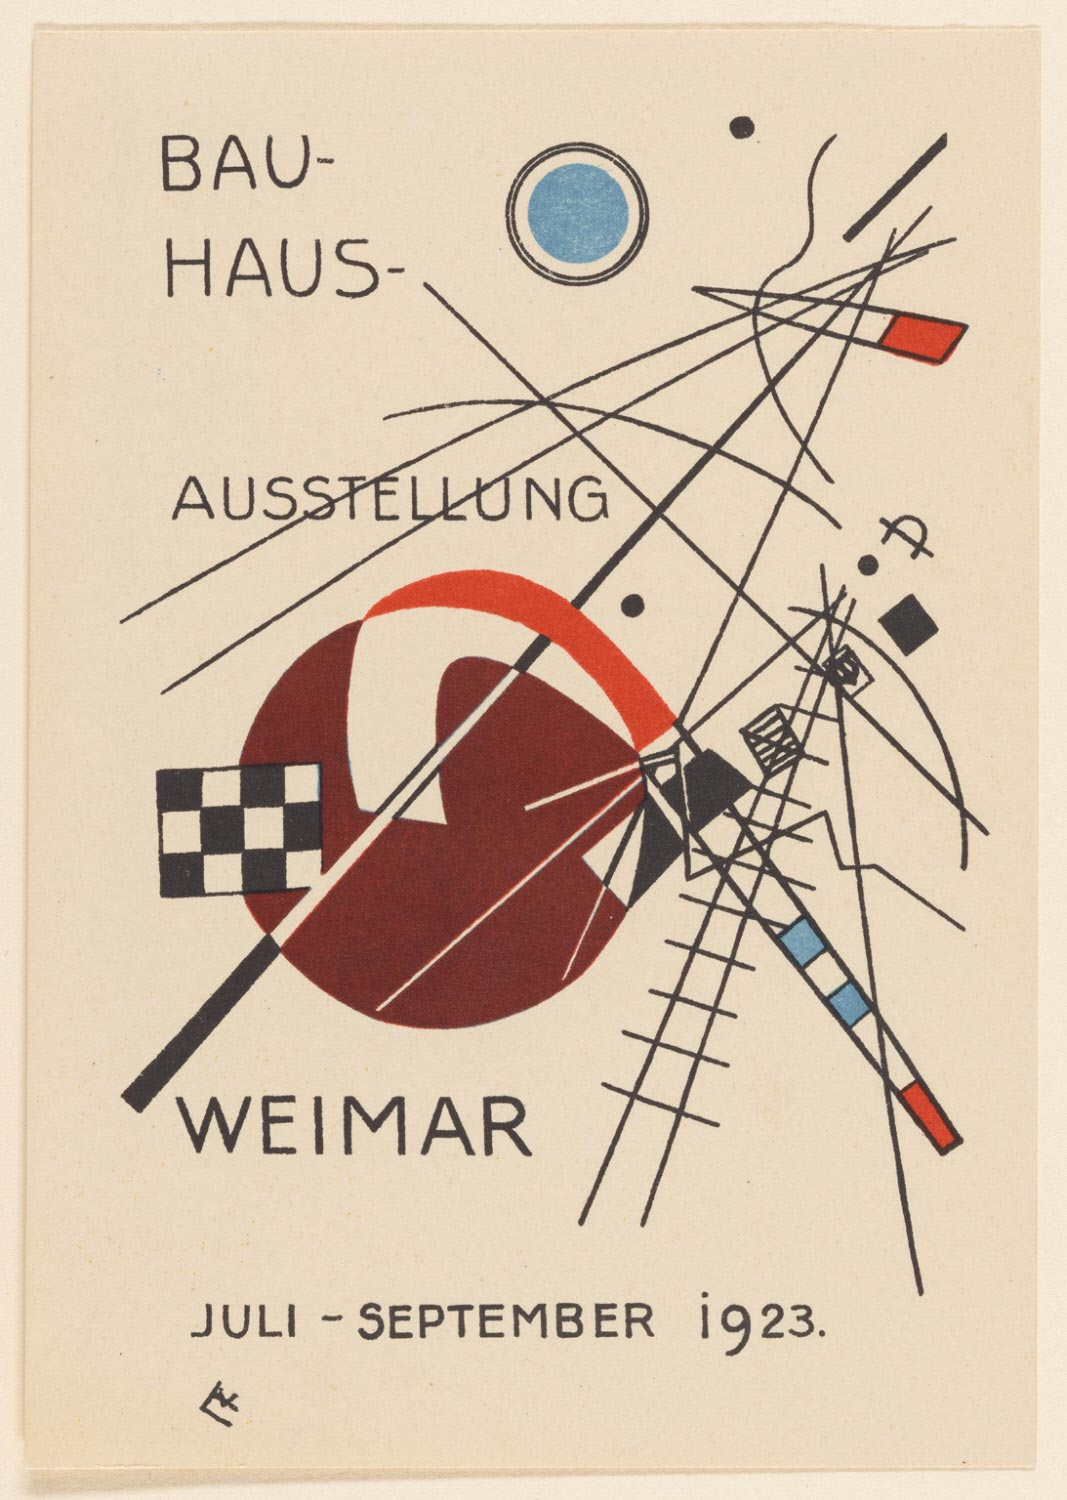 Postcard No. 3 for the Bauhaus Exhibition, Weimar, July-September 1923